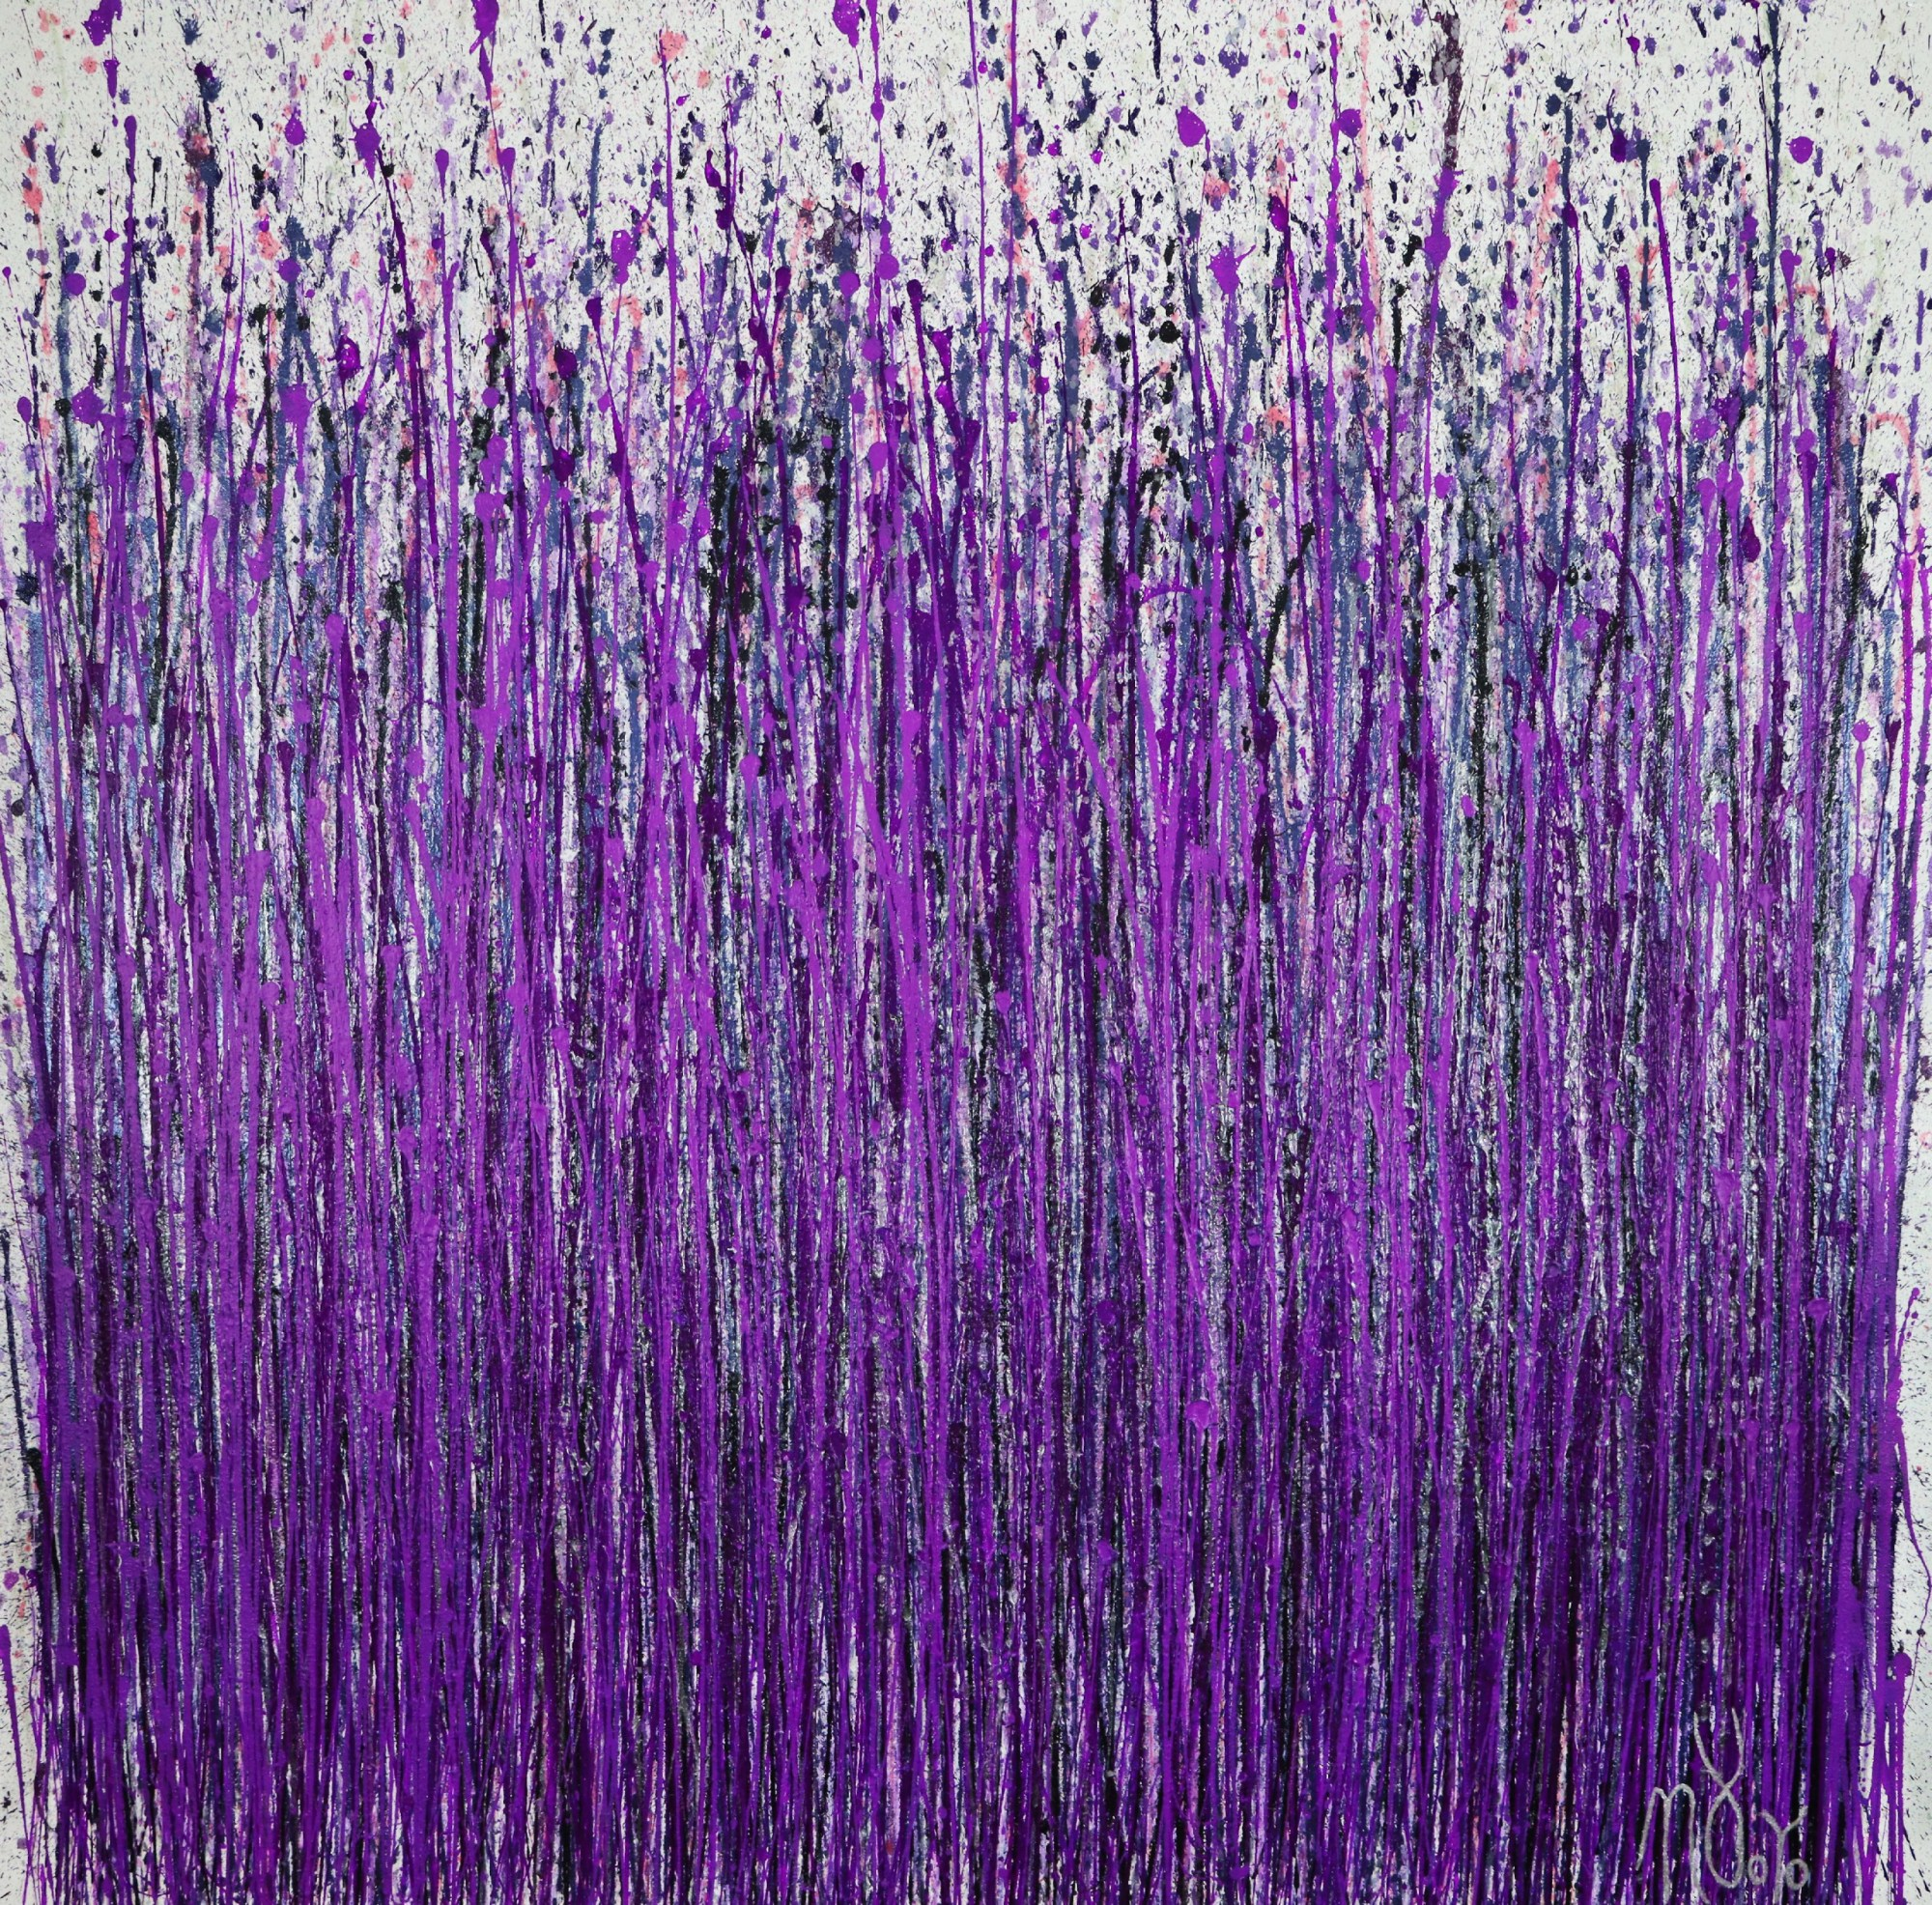 Full-canvas-Provence (Lavender Imagery) (2020) by Nestor Toro